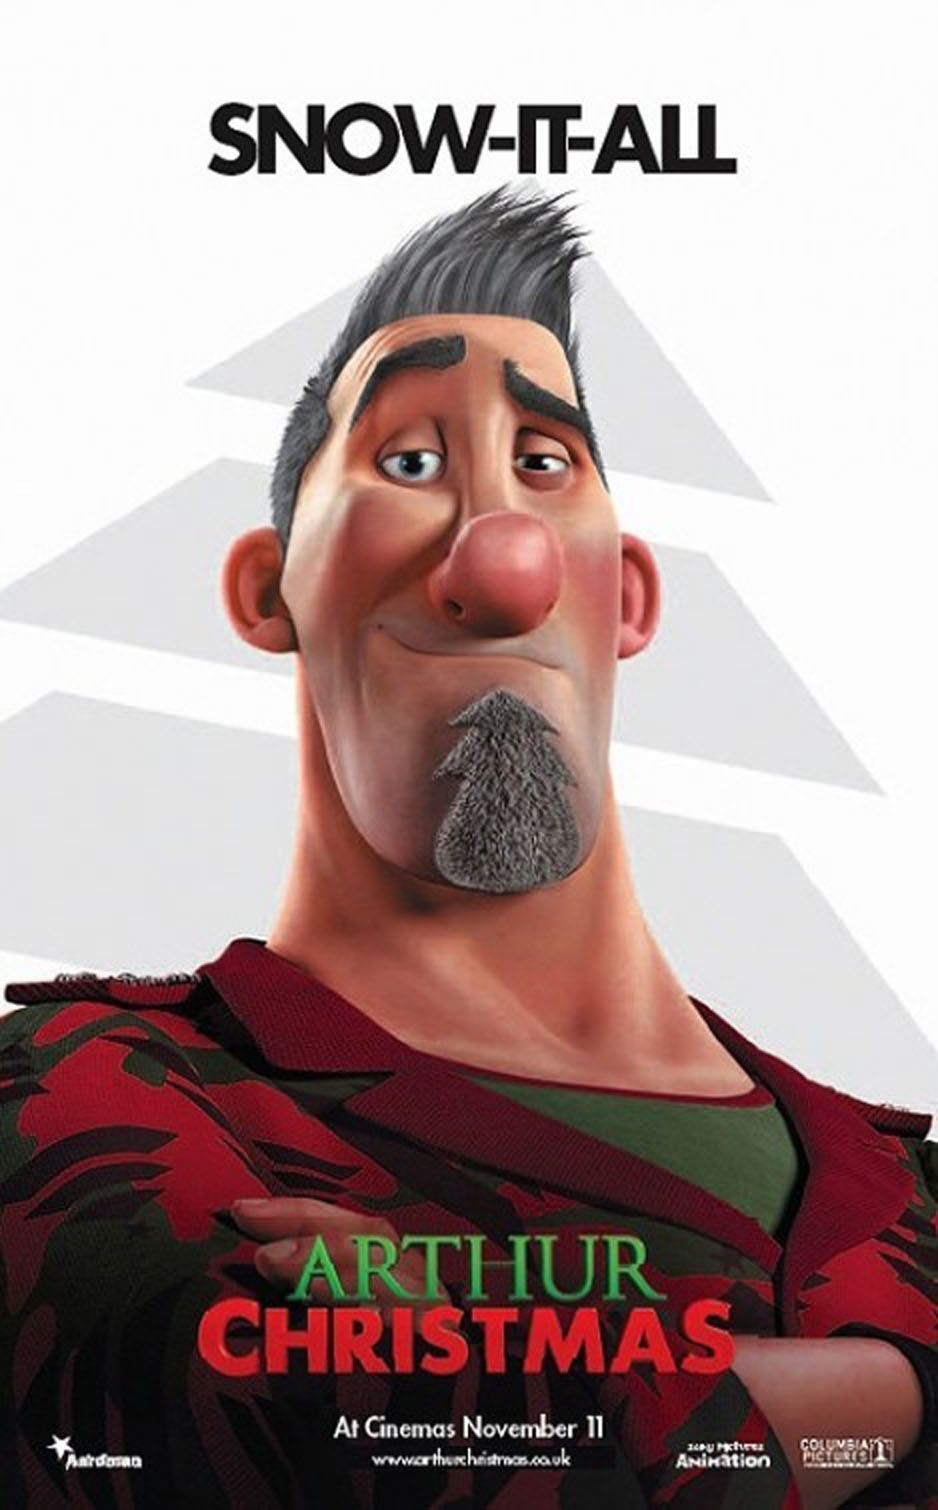 Arthur Christmas Characters.Arthur Christmas חיפוש ב Google Usefull Arthur